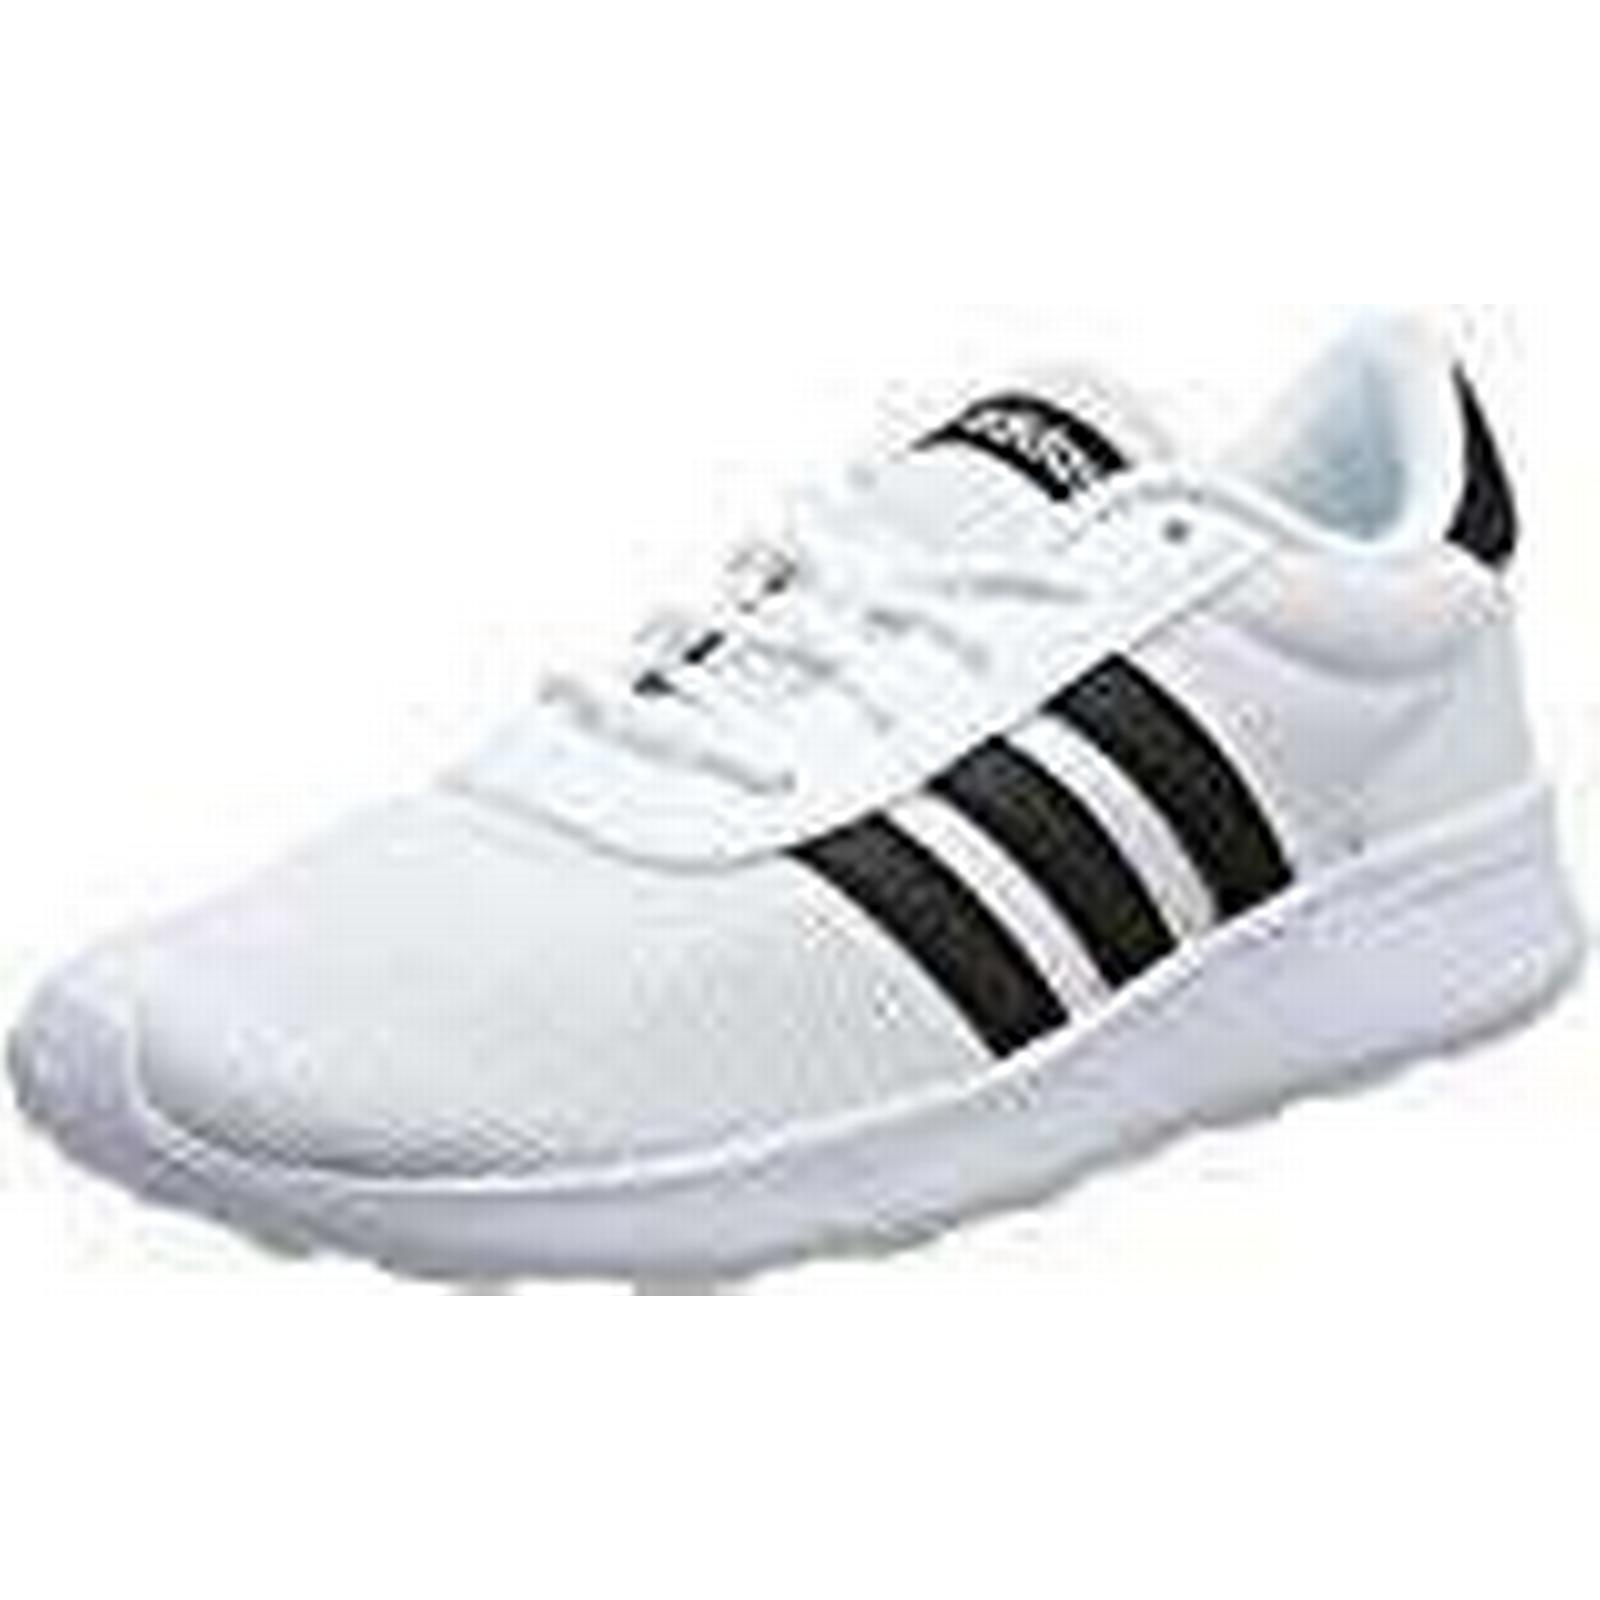 Adidas 4 Women's Lite Racer Running Shoes Core Black/Footwear White, 4 Adidas UK 36 2/3 EU b6f943